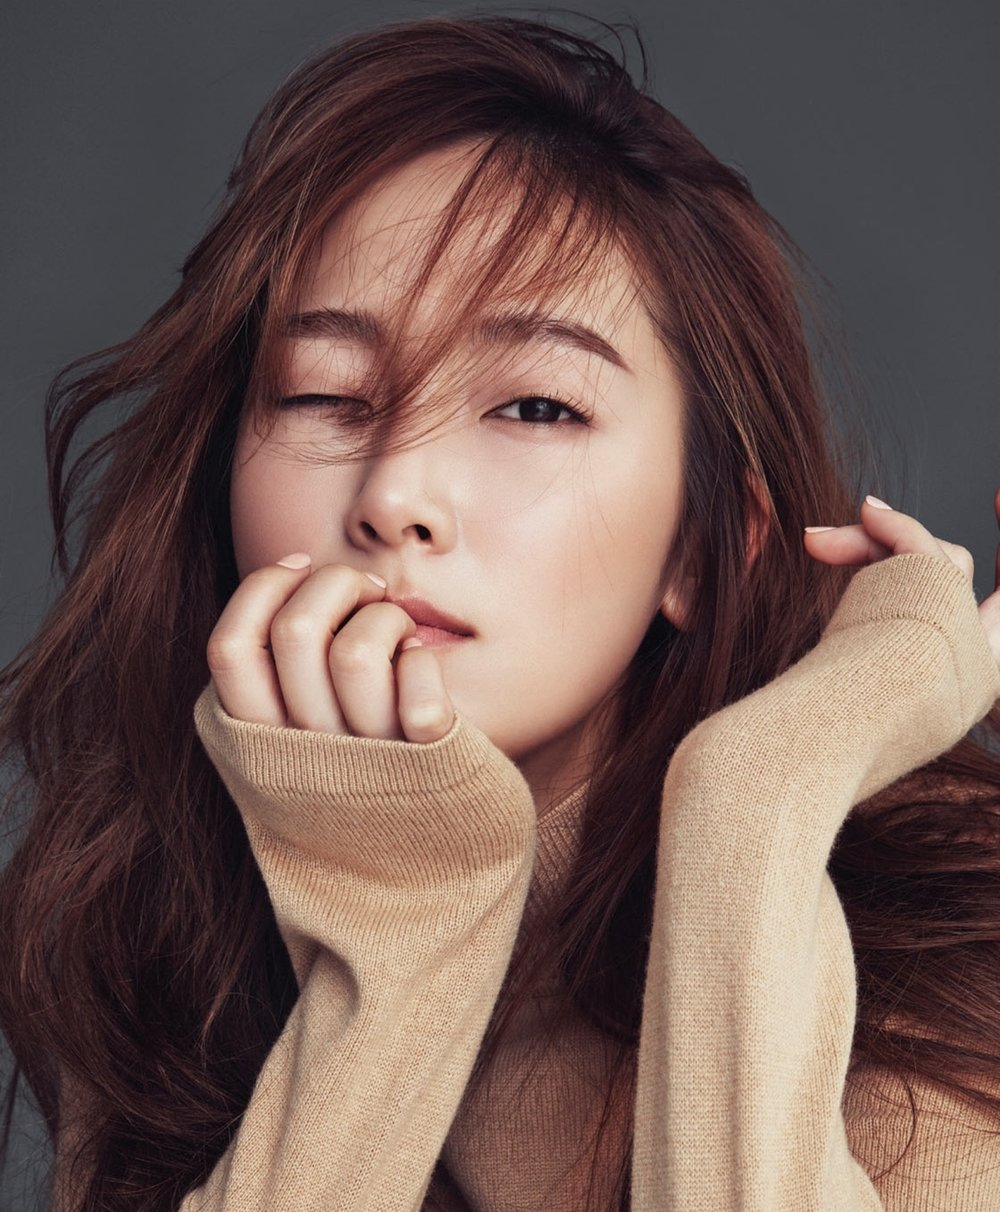 From: https://www.kpopmap.com/photo-jessica-jung-for-cosmopolitan-march-2017-issue/